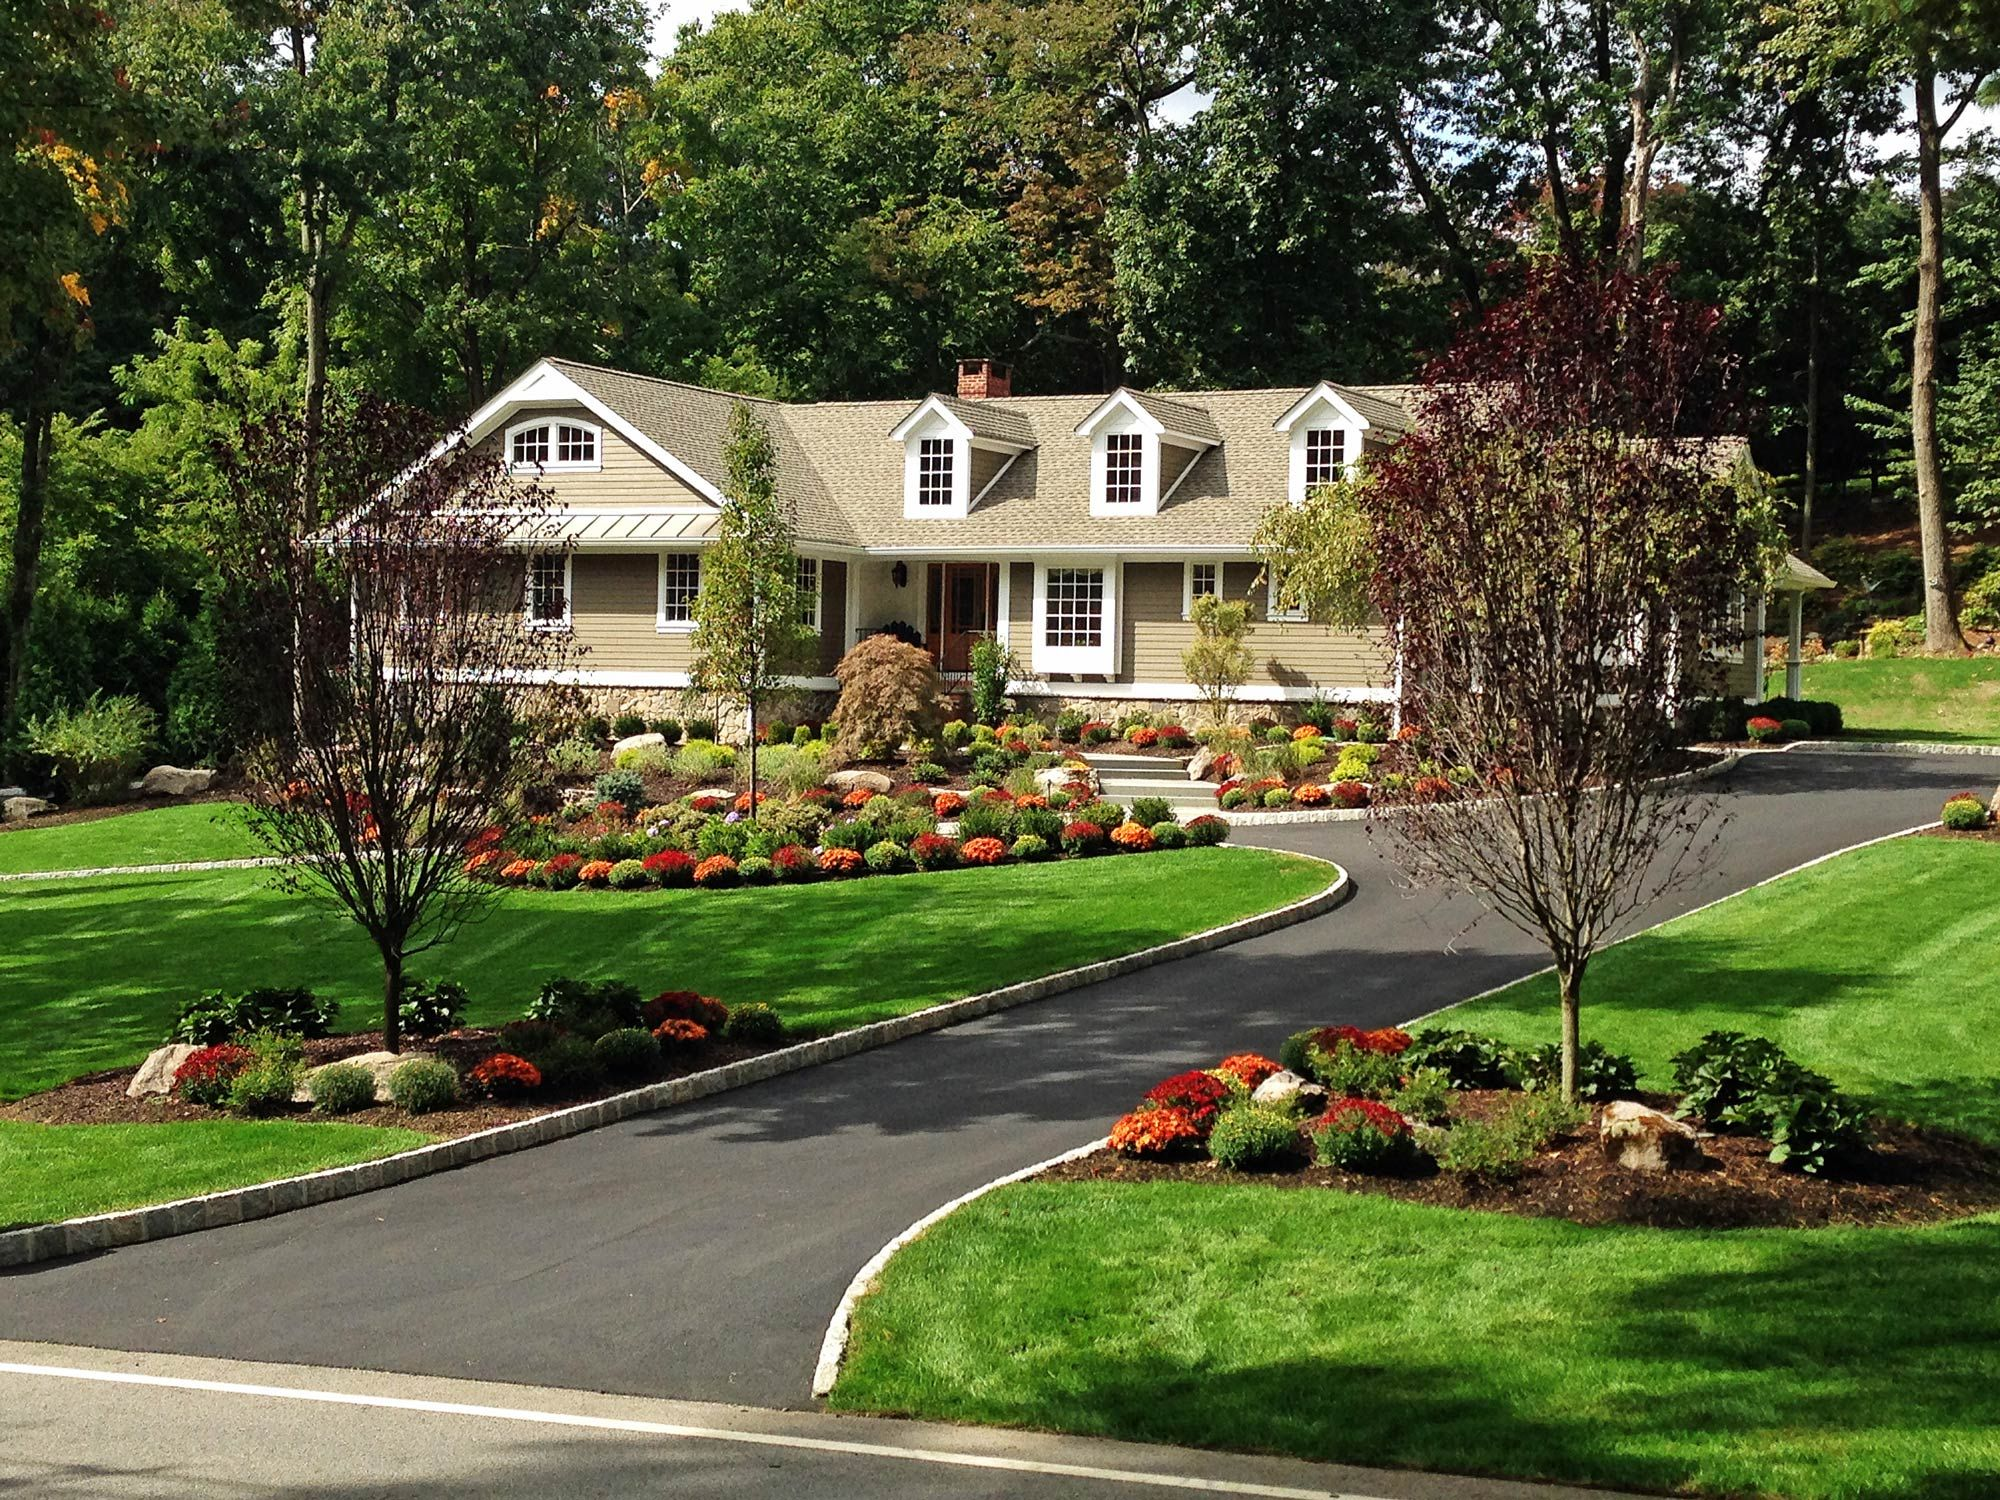 15 residential landscaping design you must know - Residential Landscape Design Ideas